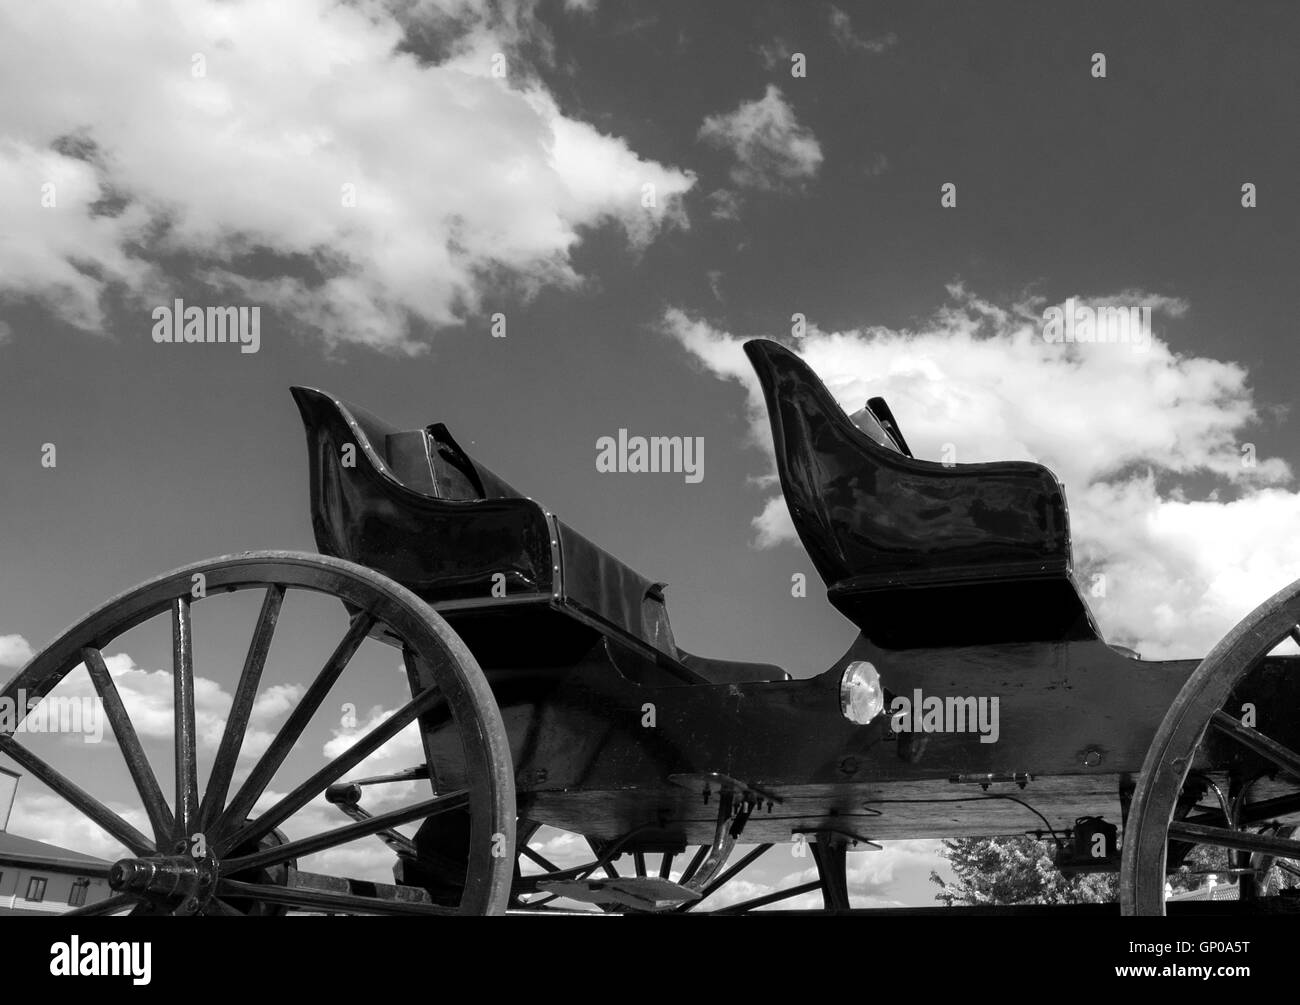 Amish buggy convertible Black and white photograph - Stock Image